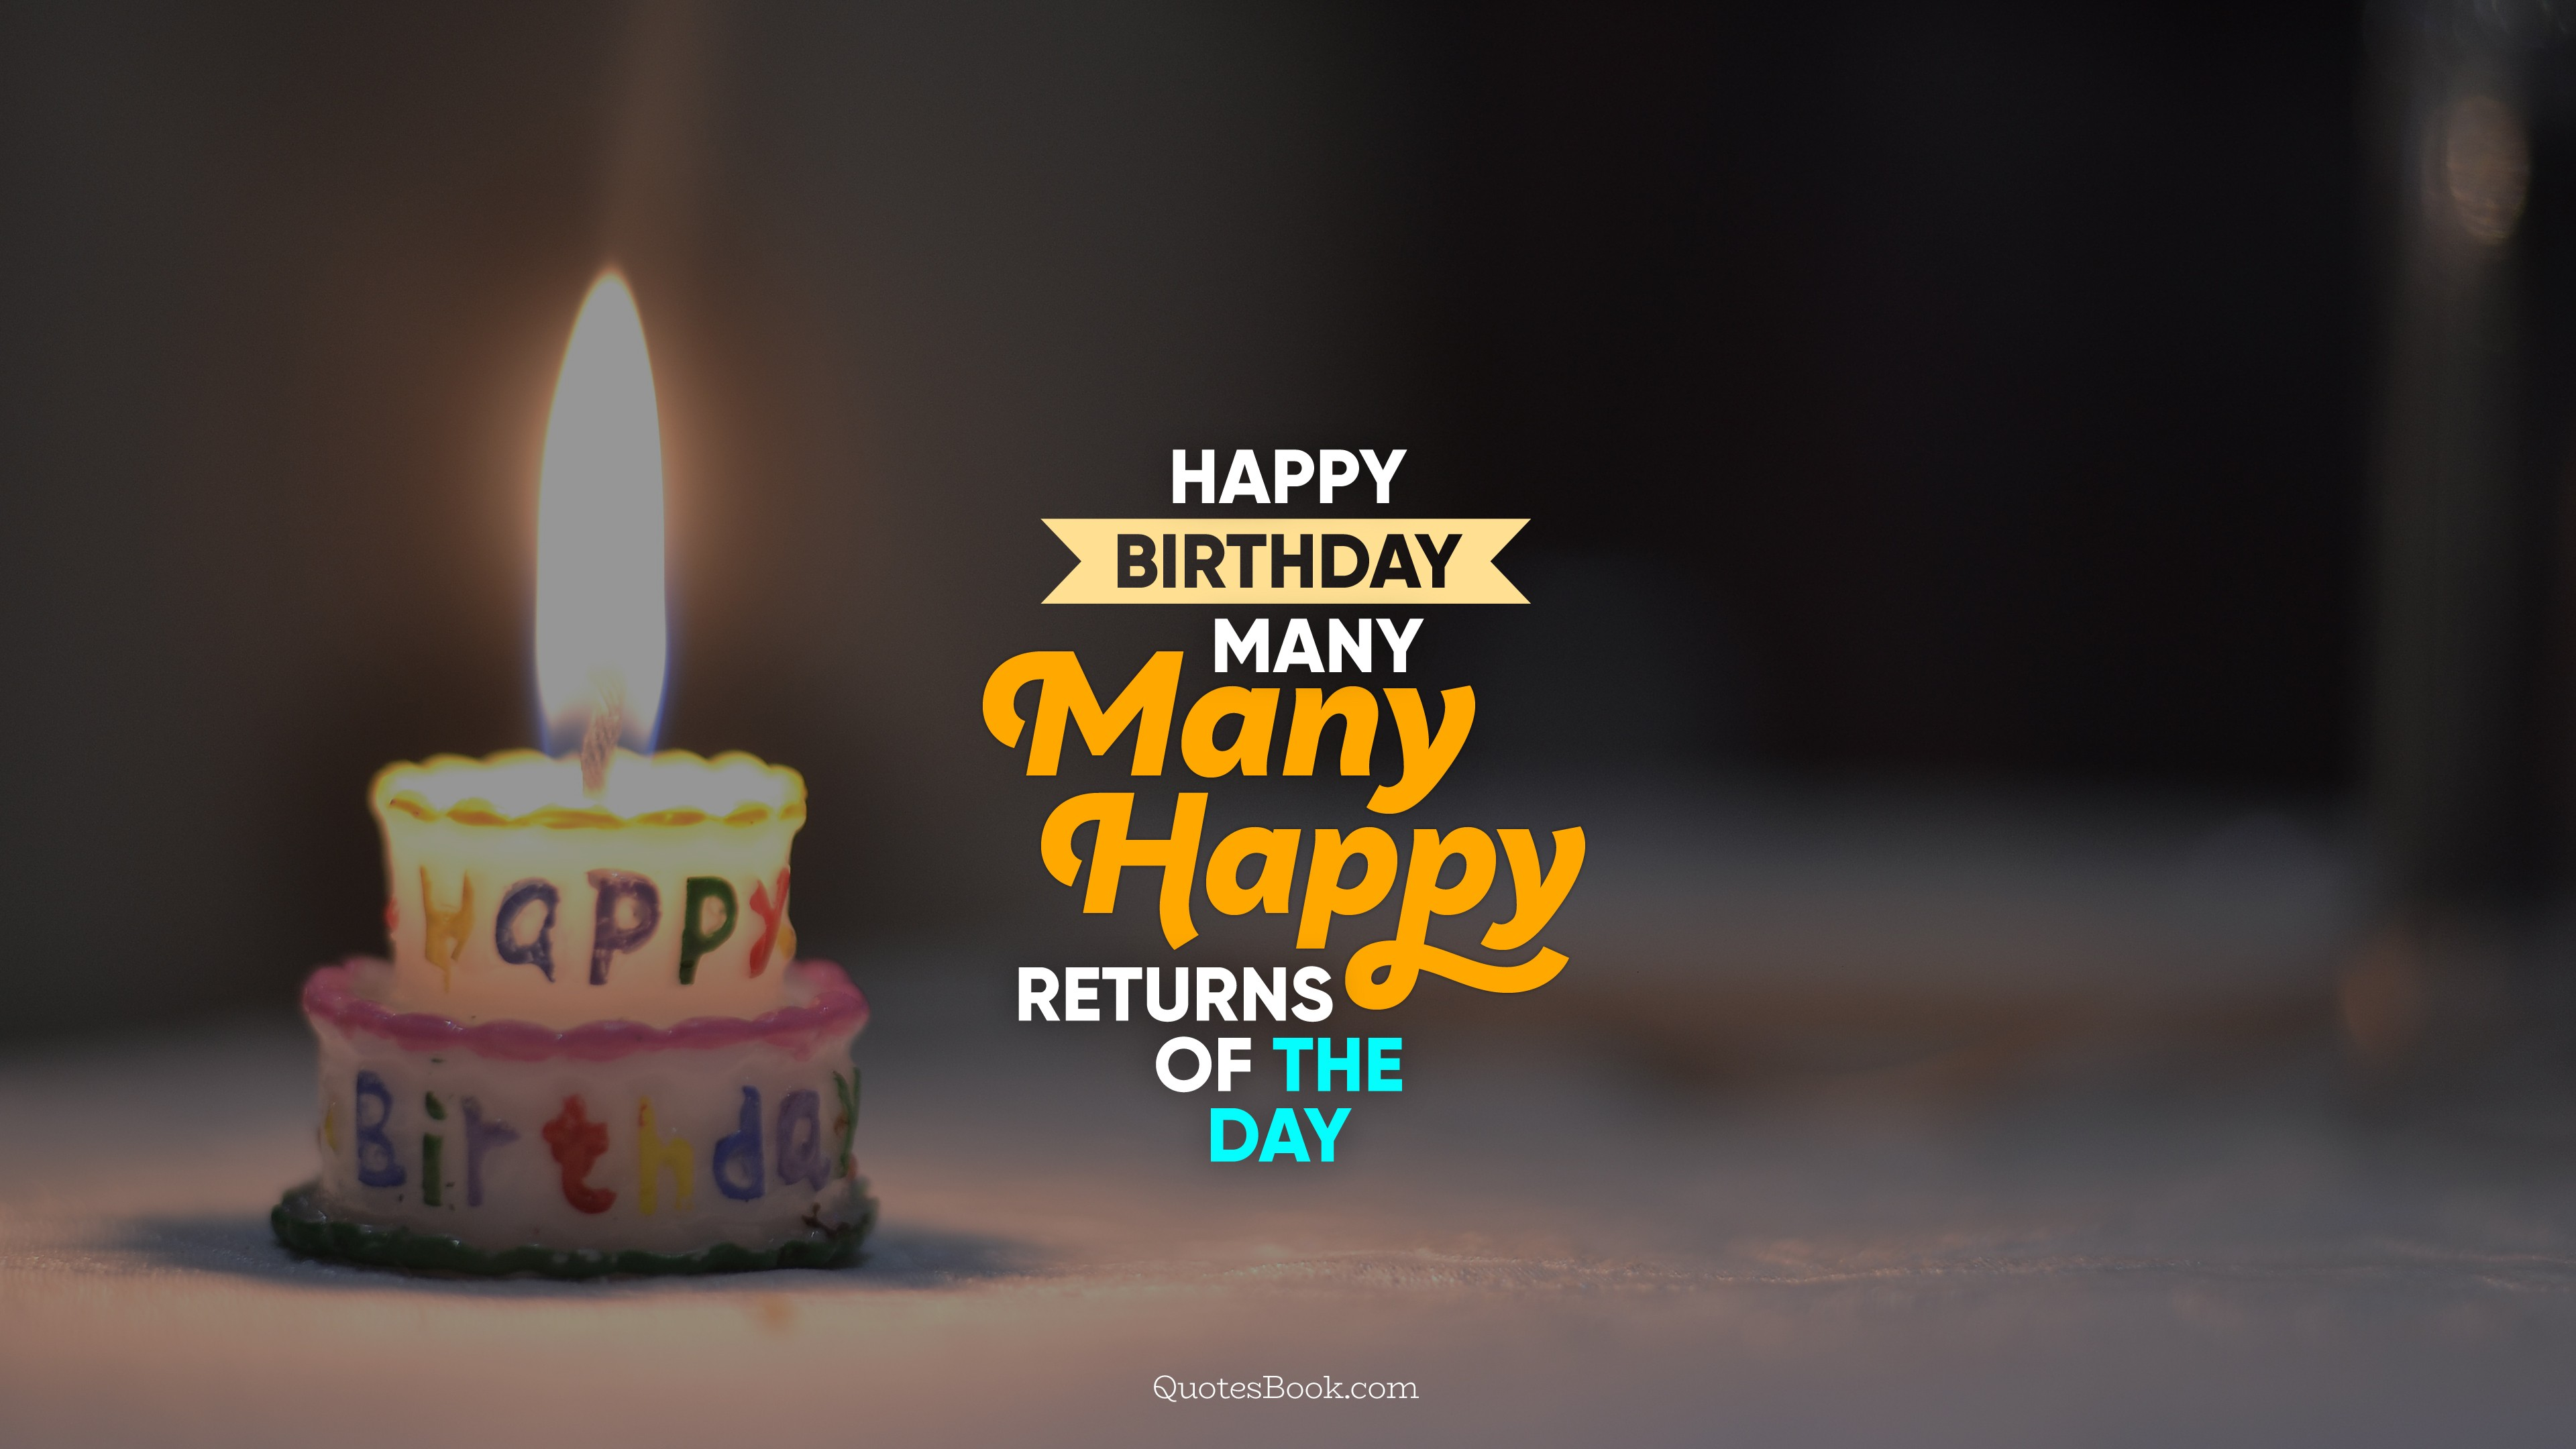 Happy Birthday Many Many Happy Returns Of The Day Quotesbook